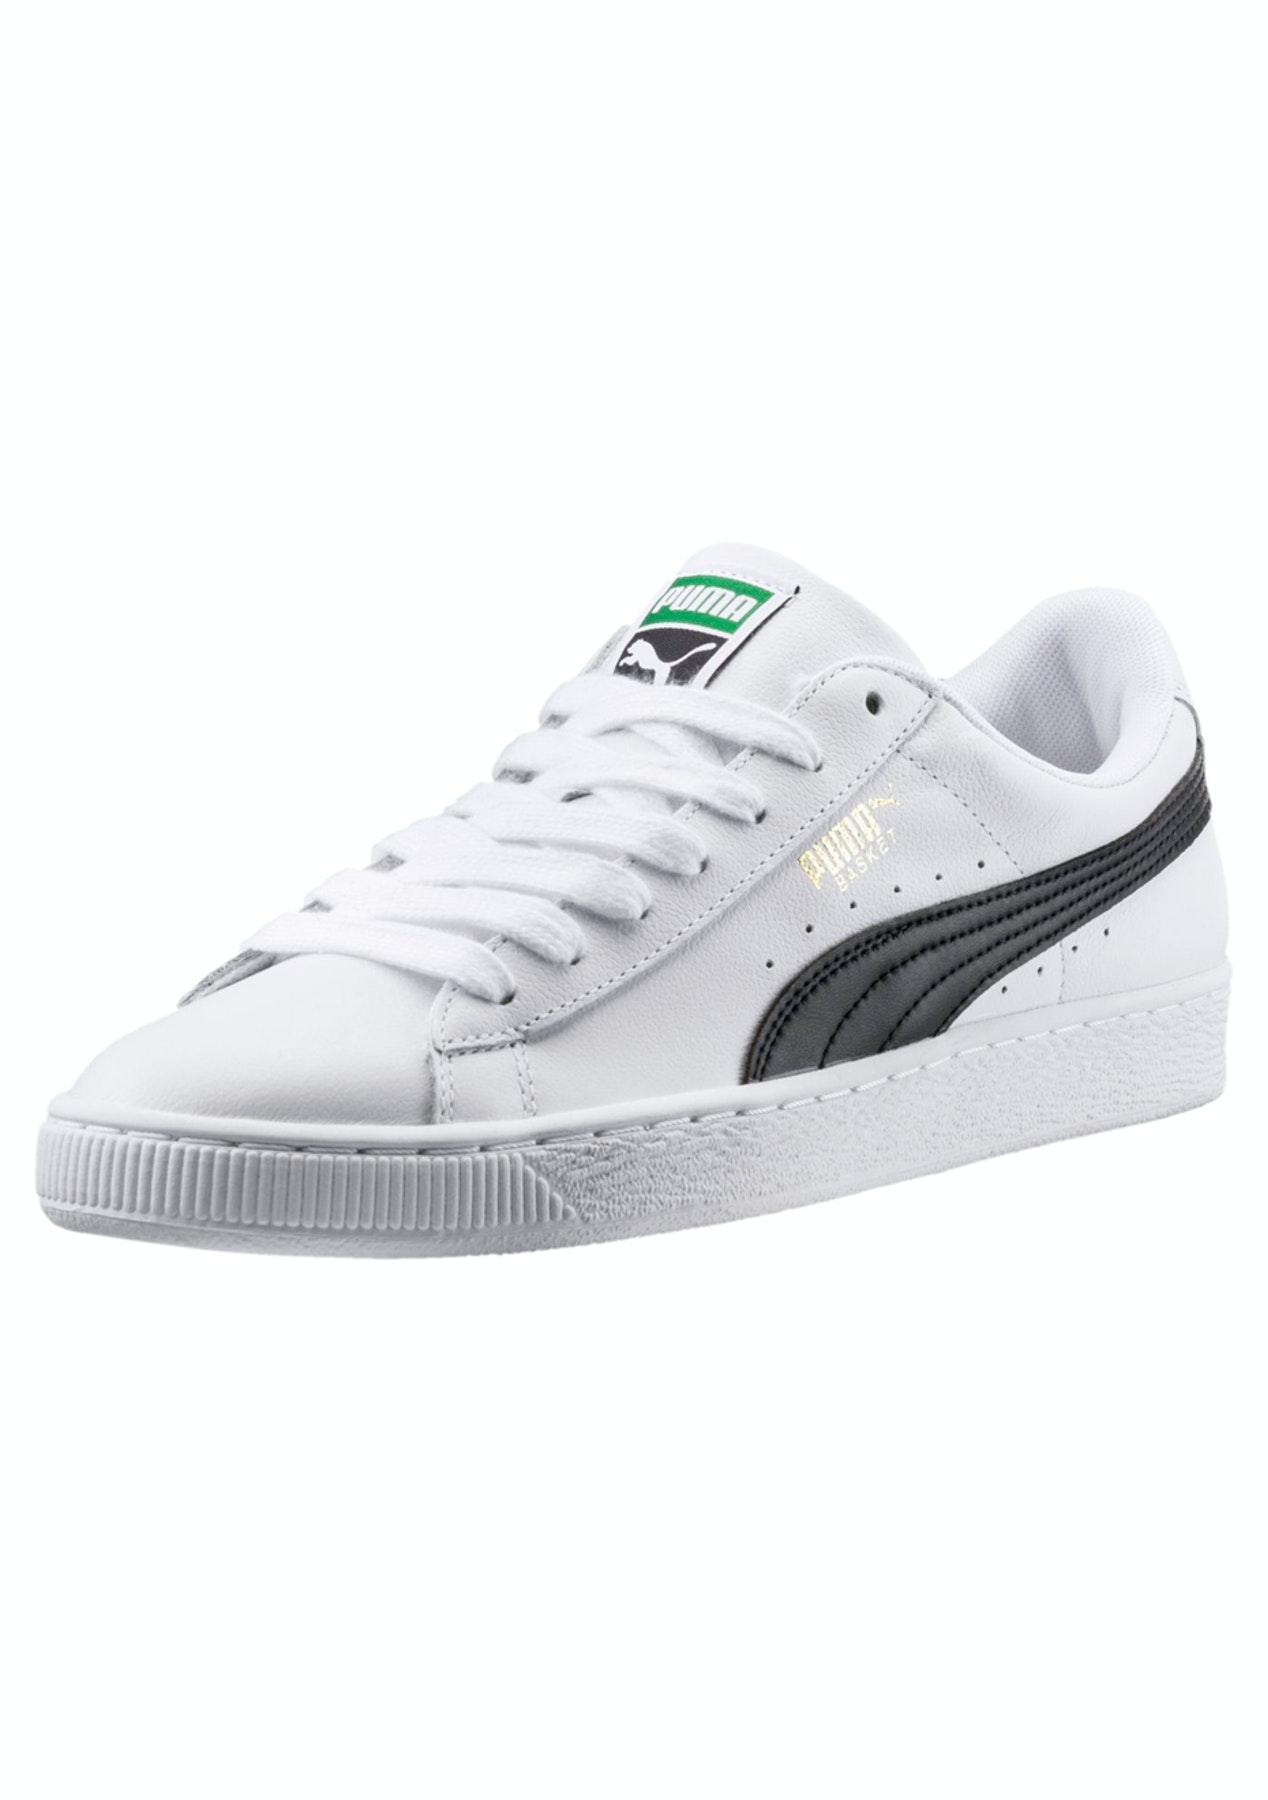 89e788dfe19 Puma Mens - Basket Classic Lfs - White Black - Free Shipping Activewear  Reductions - Onceit